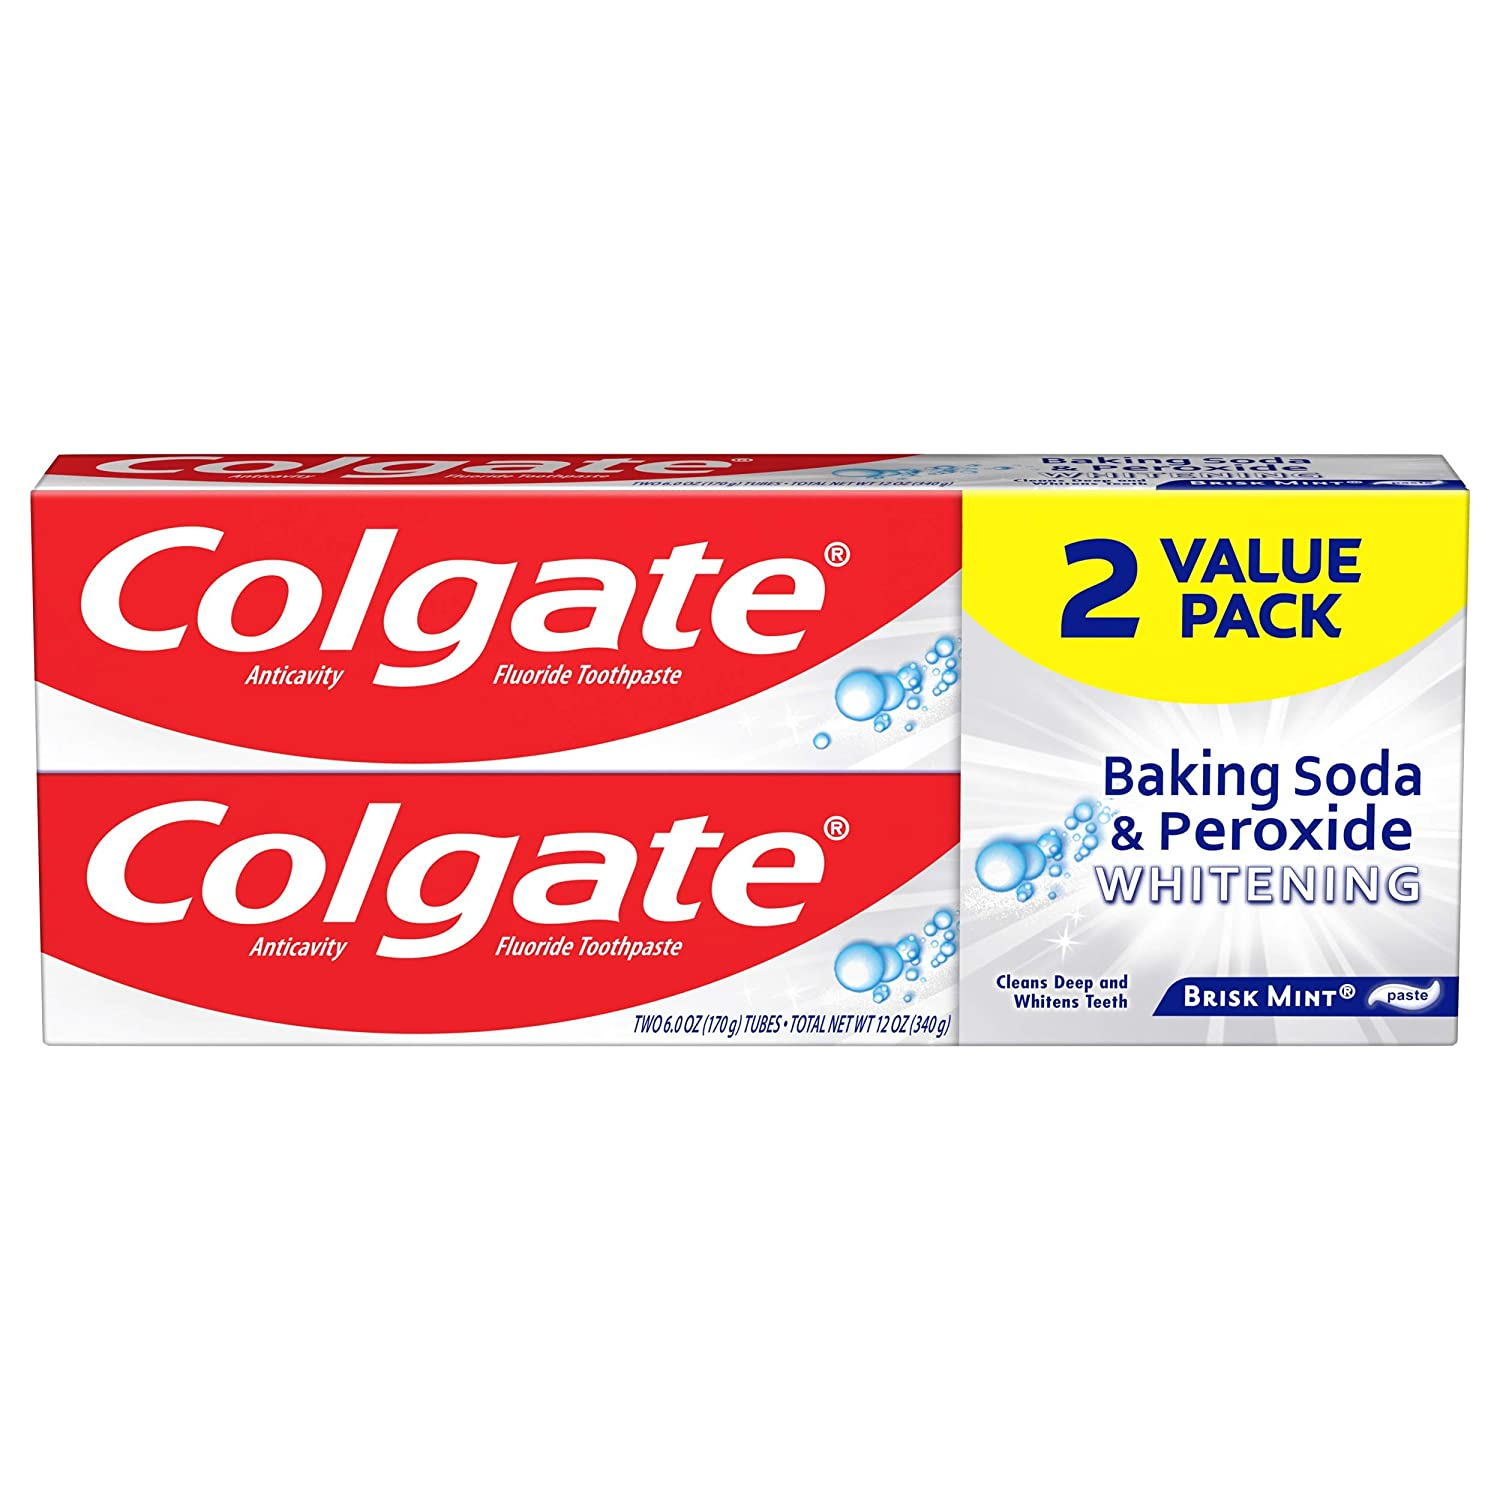 Colgate Fresno Mall Baking Soda and 2021 Peroxide Whitening - 6 Toothpaste ounce